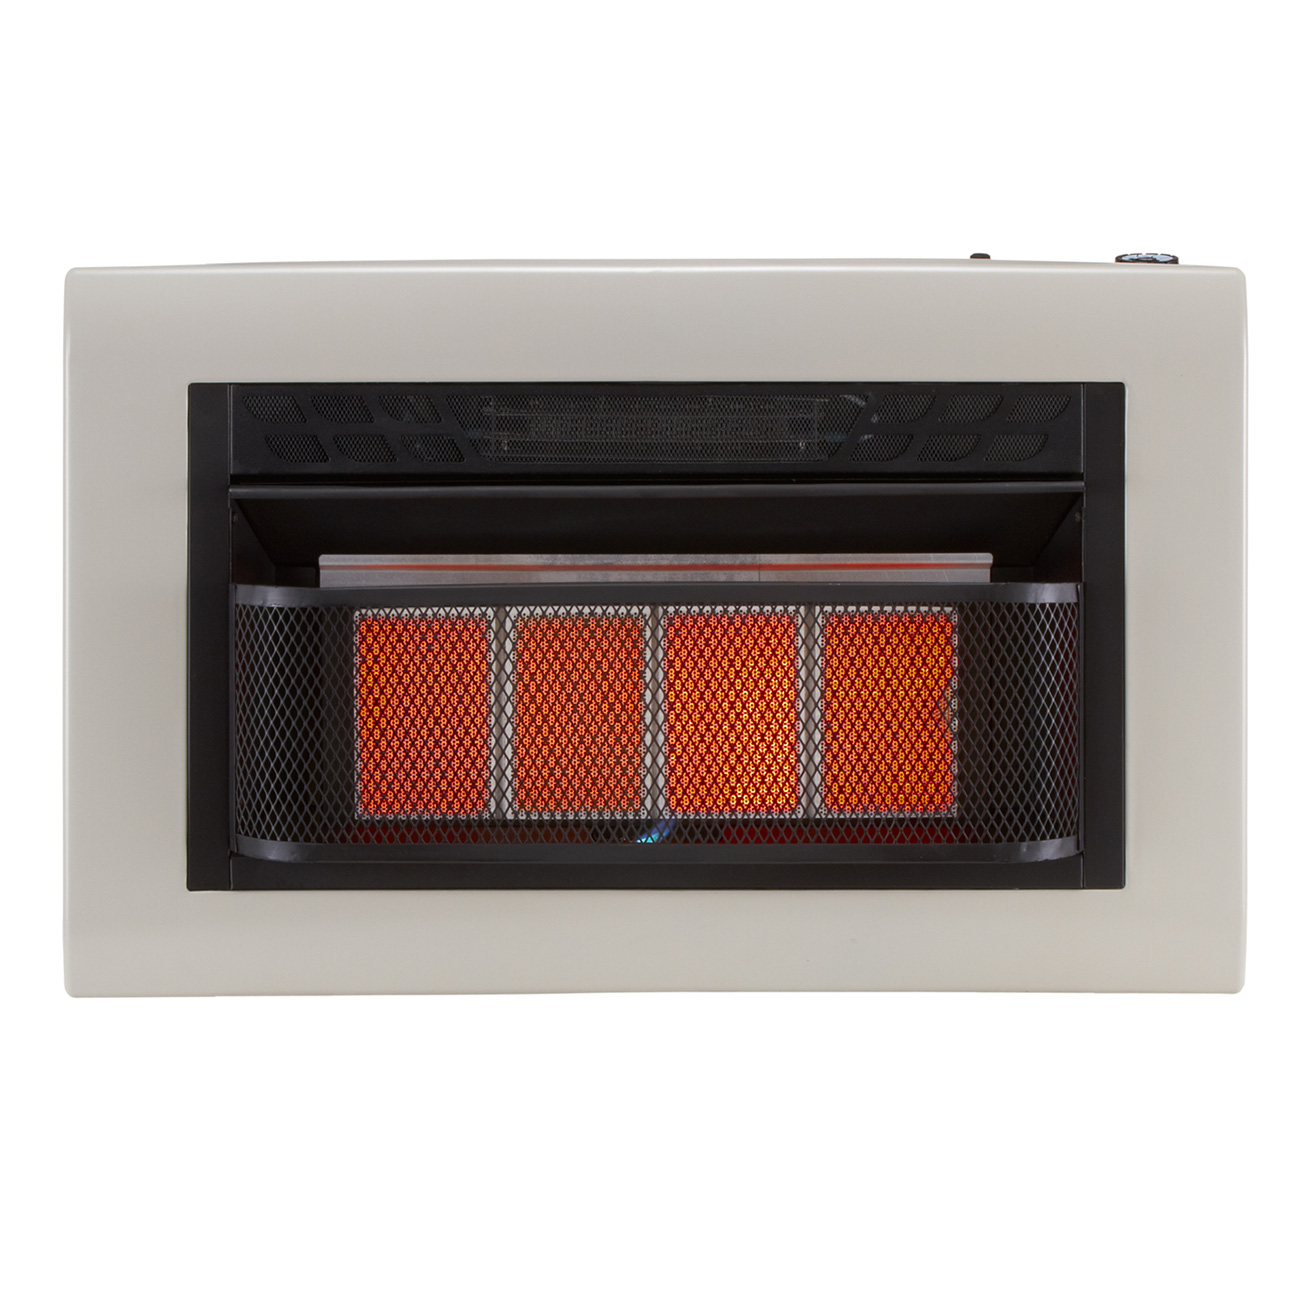 Forced Air Propane Heater >> Ventless Infrared Wall Heater MD3TPU Series - ProCom Heating